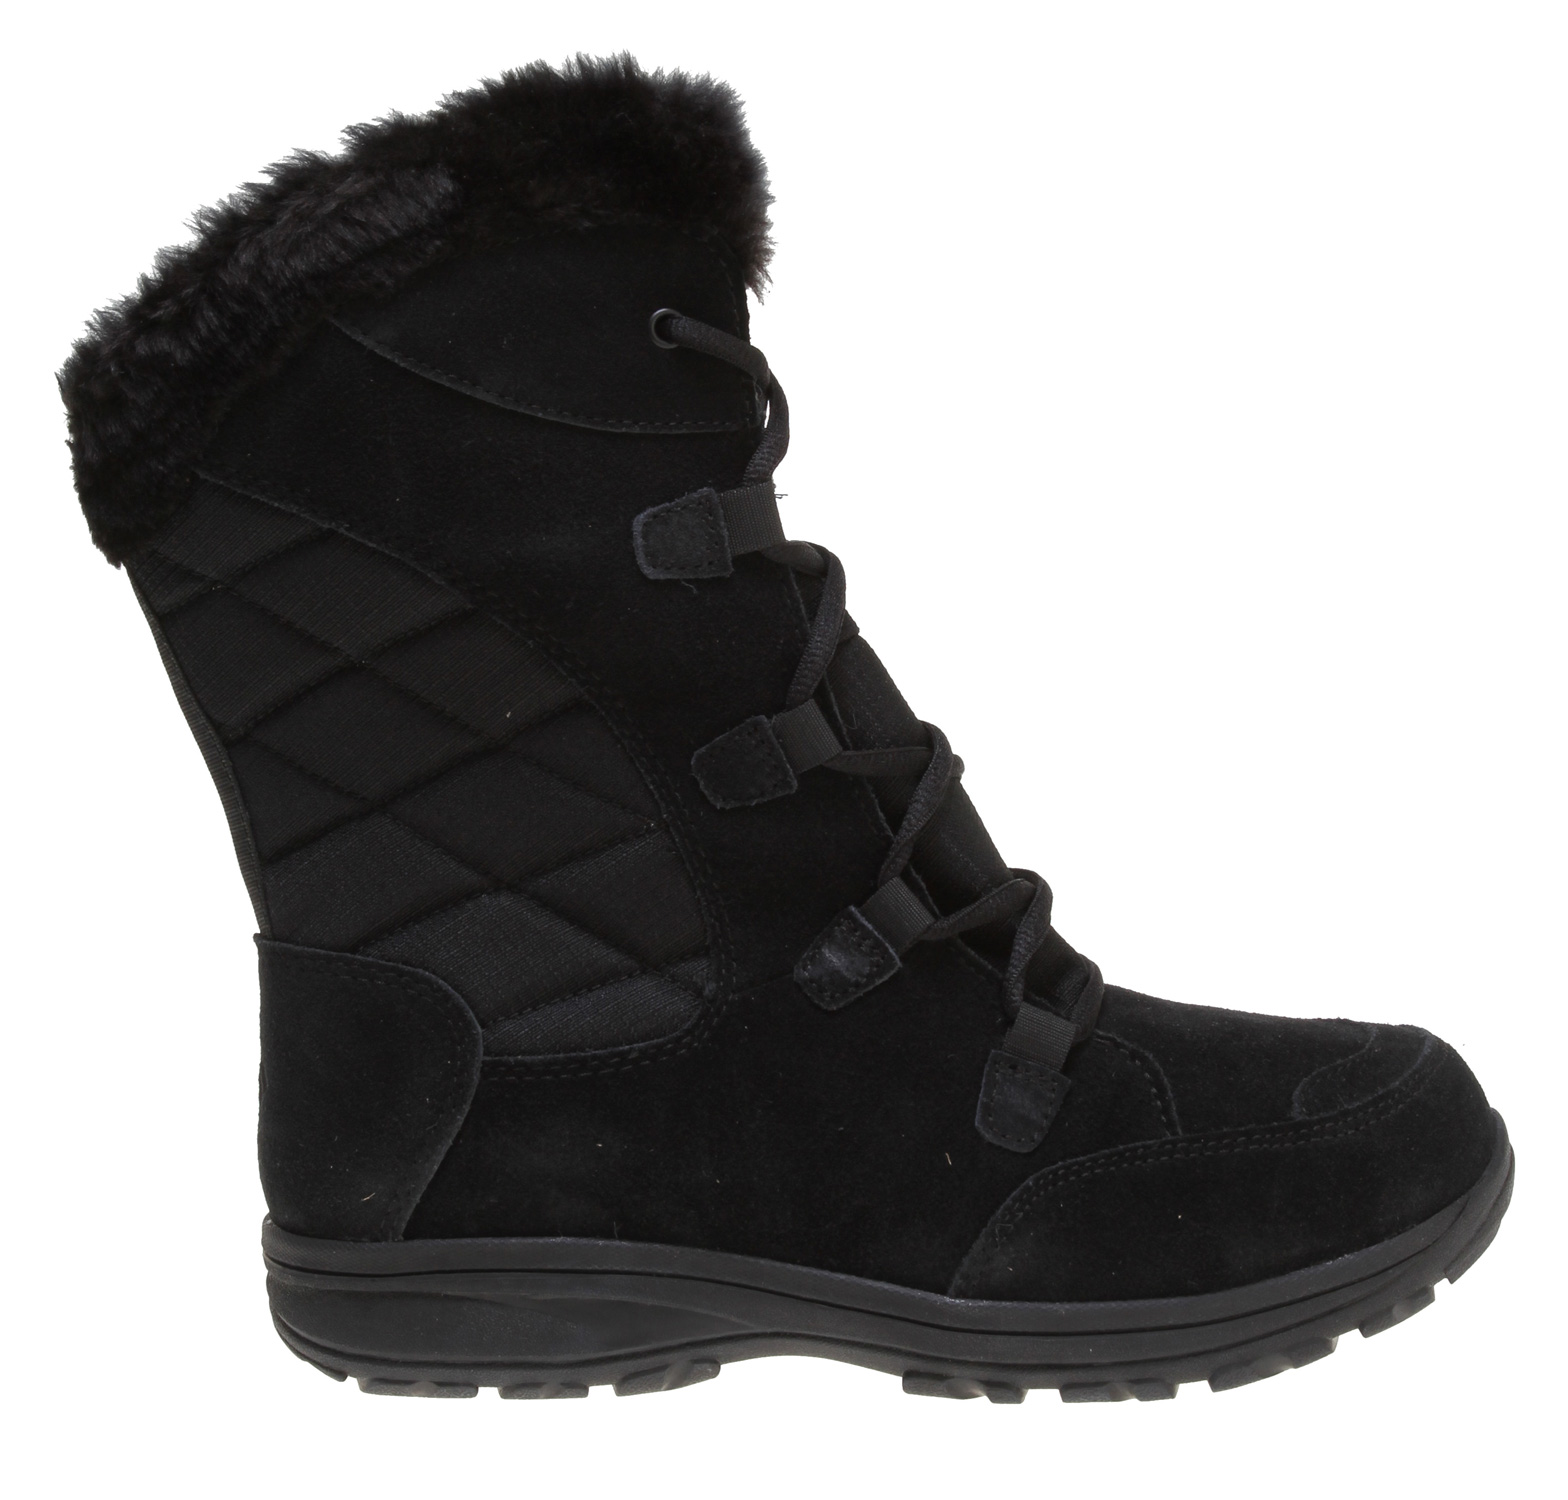 A value packed waterproof winter boot.Key Features of the Columbia Ice Maiden Lace Boots: Upper: Waterproof leather and textile. Faux fur collar for add warmth and soft fleece lining Insulation: 200gr insulation. Rated -25F/-32C Footbed: EVA for comfort and support Shank: Molded nylon shank provides torsional rigidity and support Midsole/Outsole: Non-marking Omni-Grip rubber compound with a winter specific lug tread pattern for maximum traction - $79.95